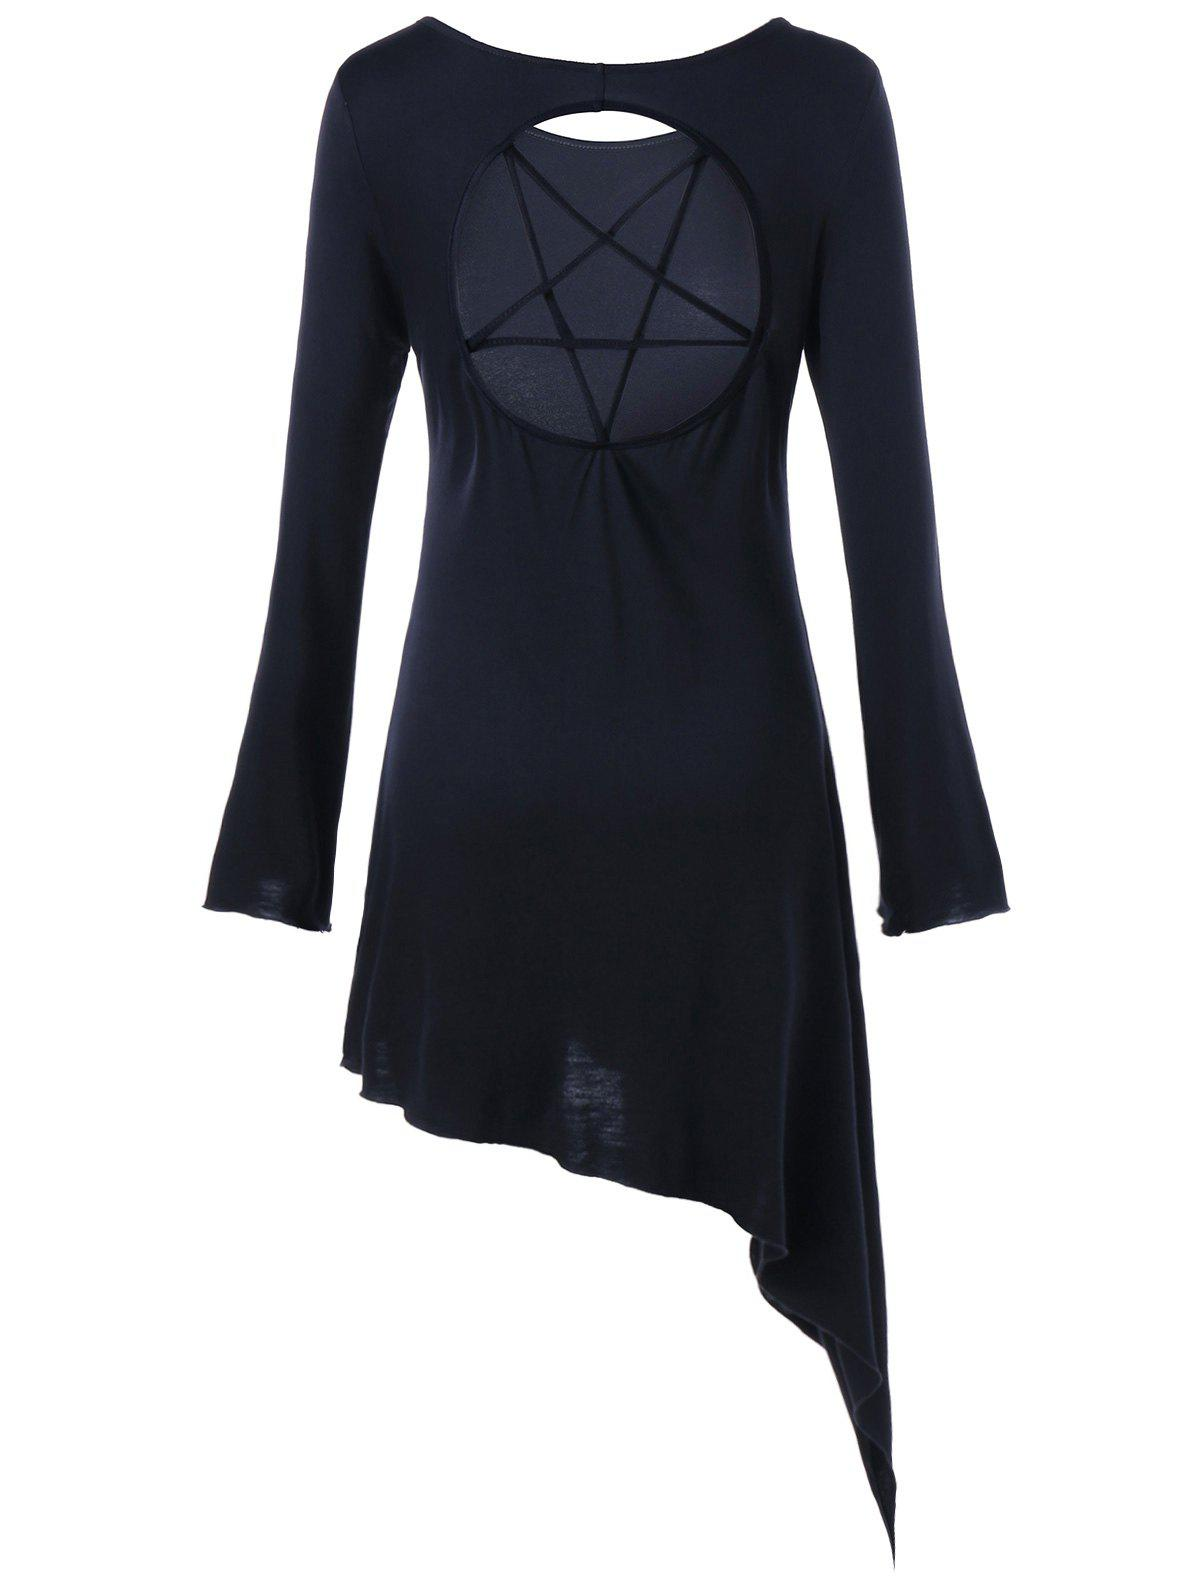 Star Cut Out Long Sleeve Asymmetric Dress - BLACK XL